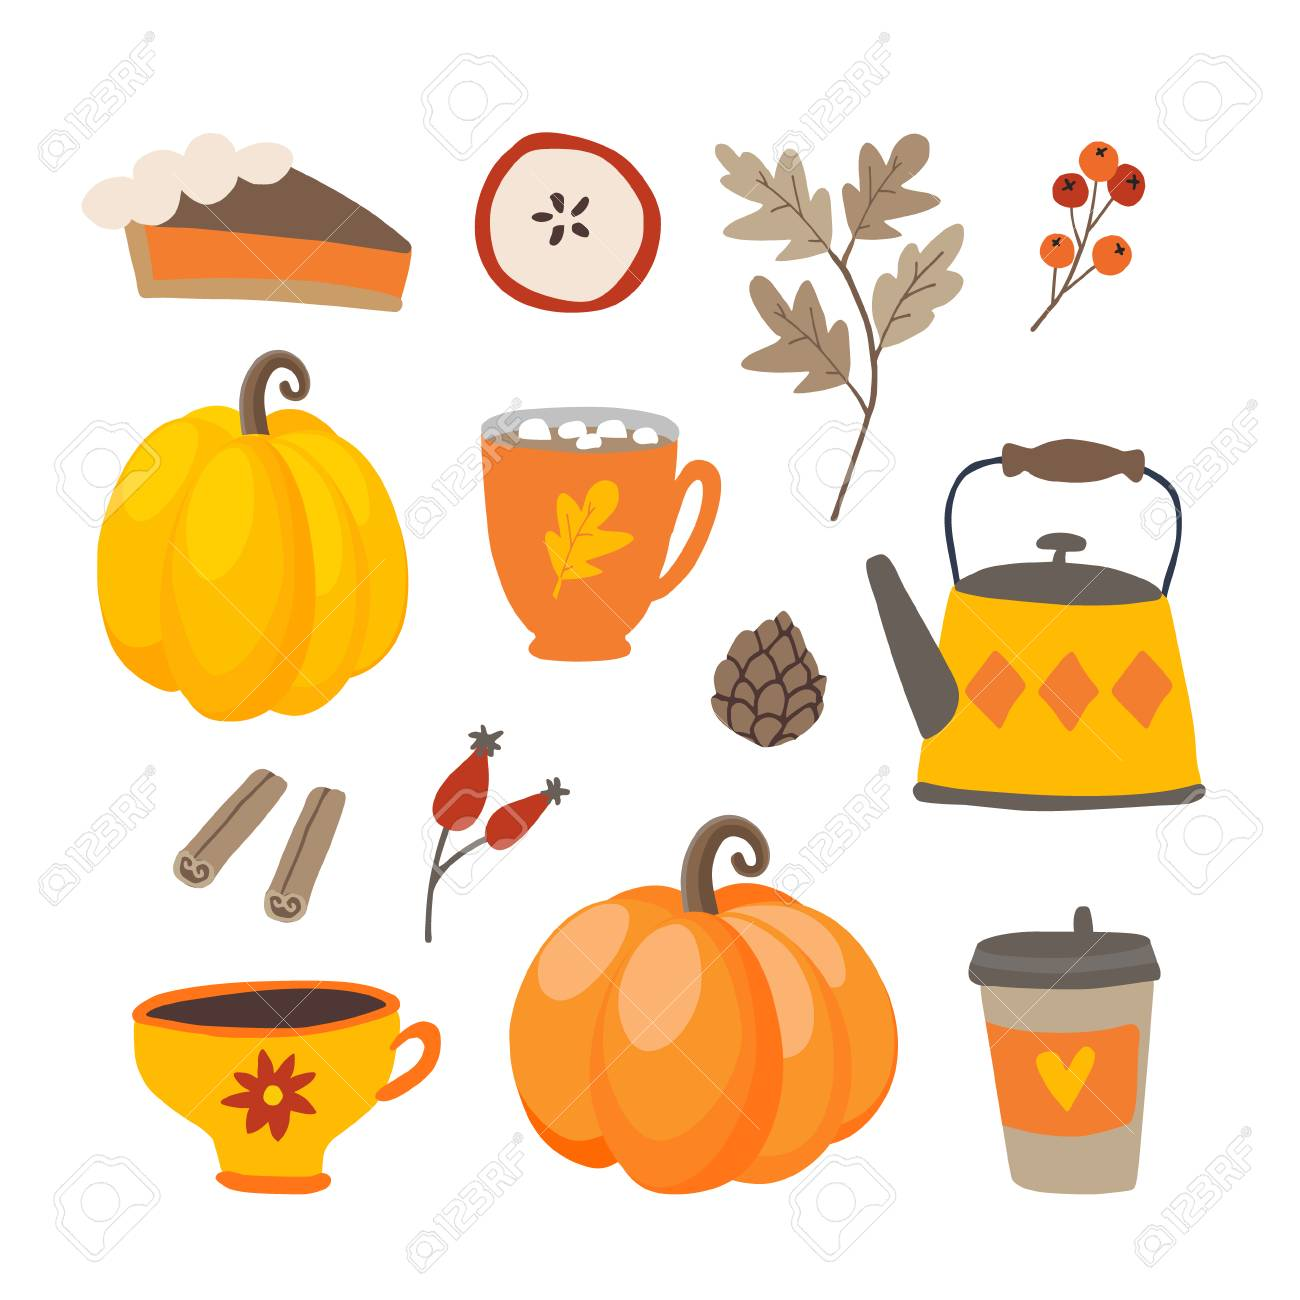 Set of cute cartoon Thanksgiving day icons with pumpkins, pie, coffee, cinnamon spice and oak leaves. Fall season designs, autumn sticker collection. Isolated vector scrapbooking illustrations. - 109818035